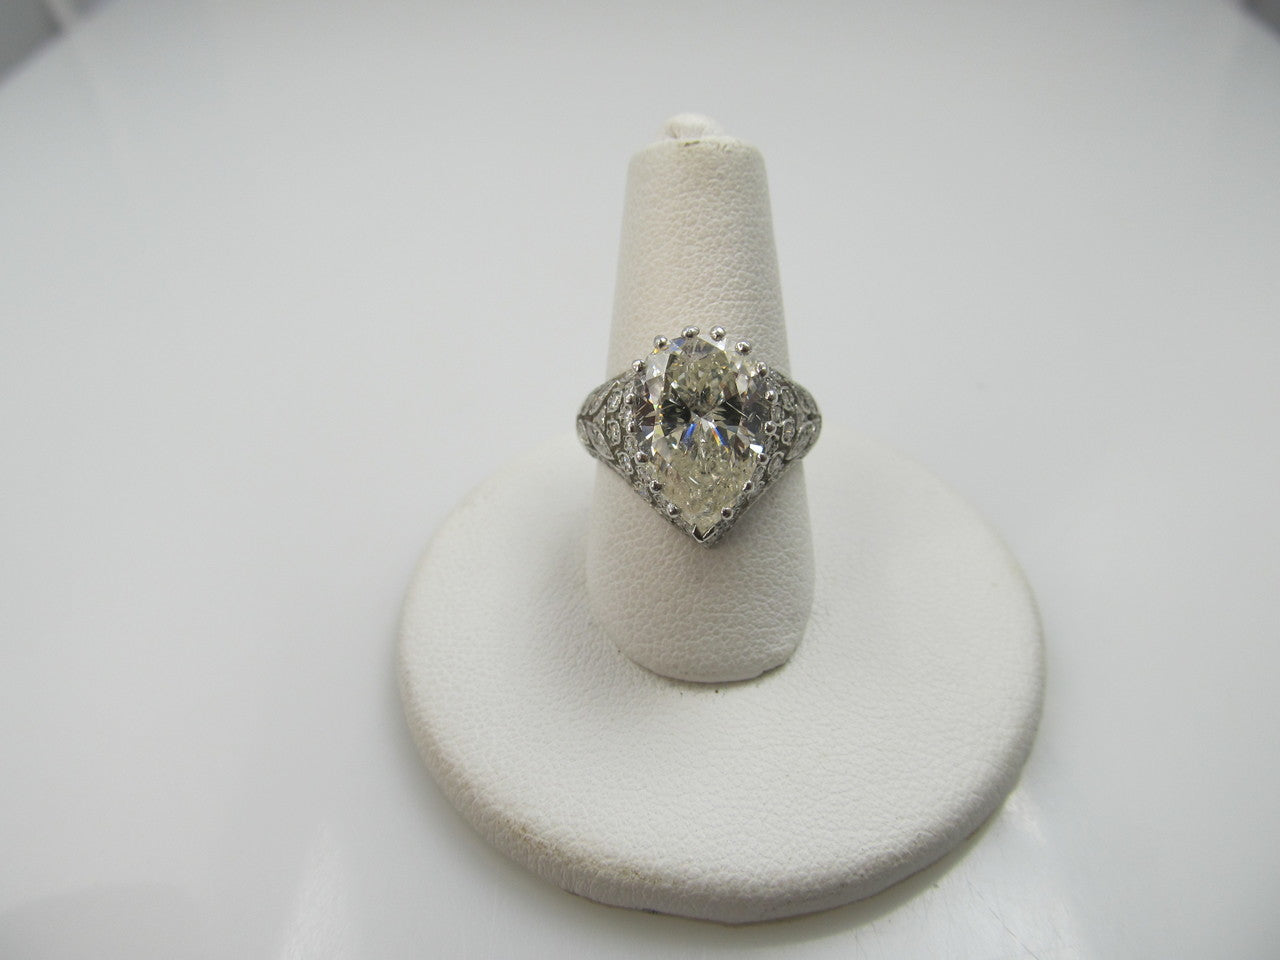 Platinum Filigree Ring With A 4.10ct Pear Shaped Diamond